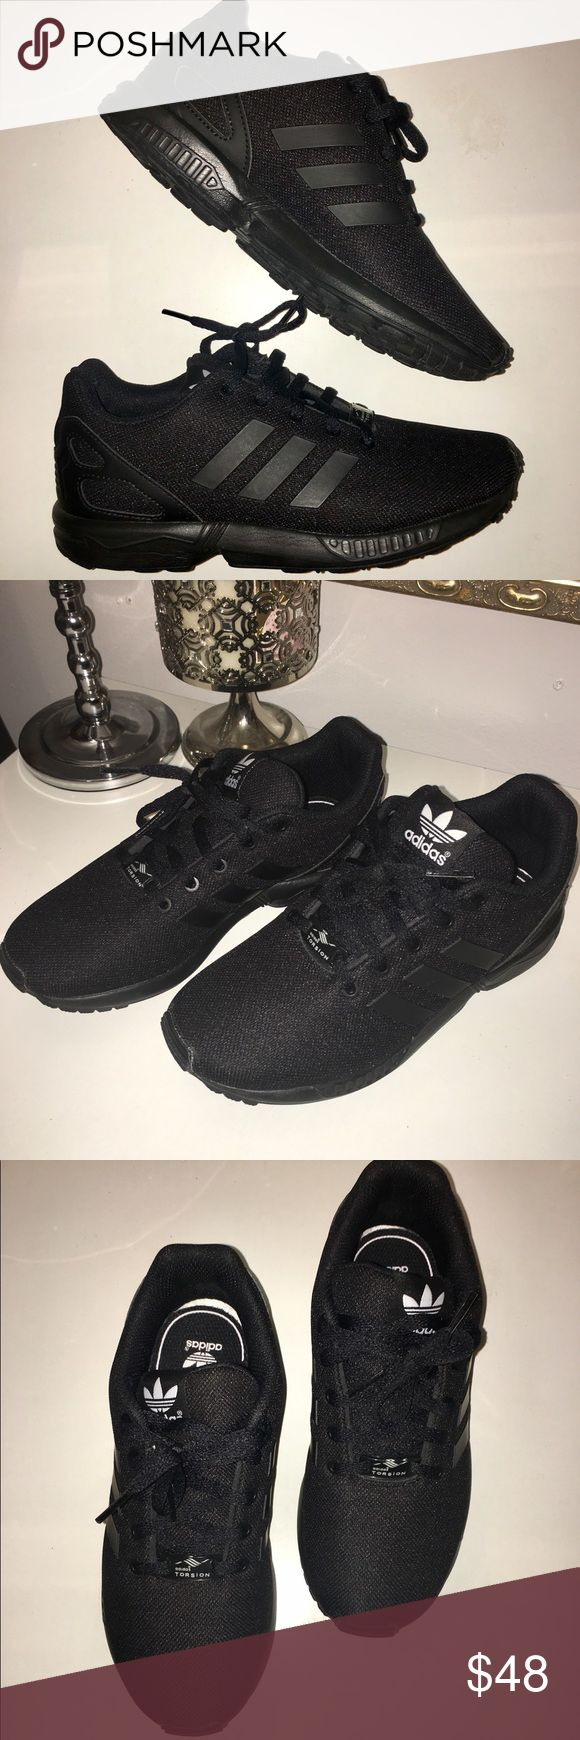 Adidas Black ZX Flux C Great Condition Adidas Originals ZX Flux running shoes. Incredibly comfortable, breathable, and supportive mesh upper, cushion insole, TPU heel and welded TPU 3-stripes adidas Shoes Sneakers